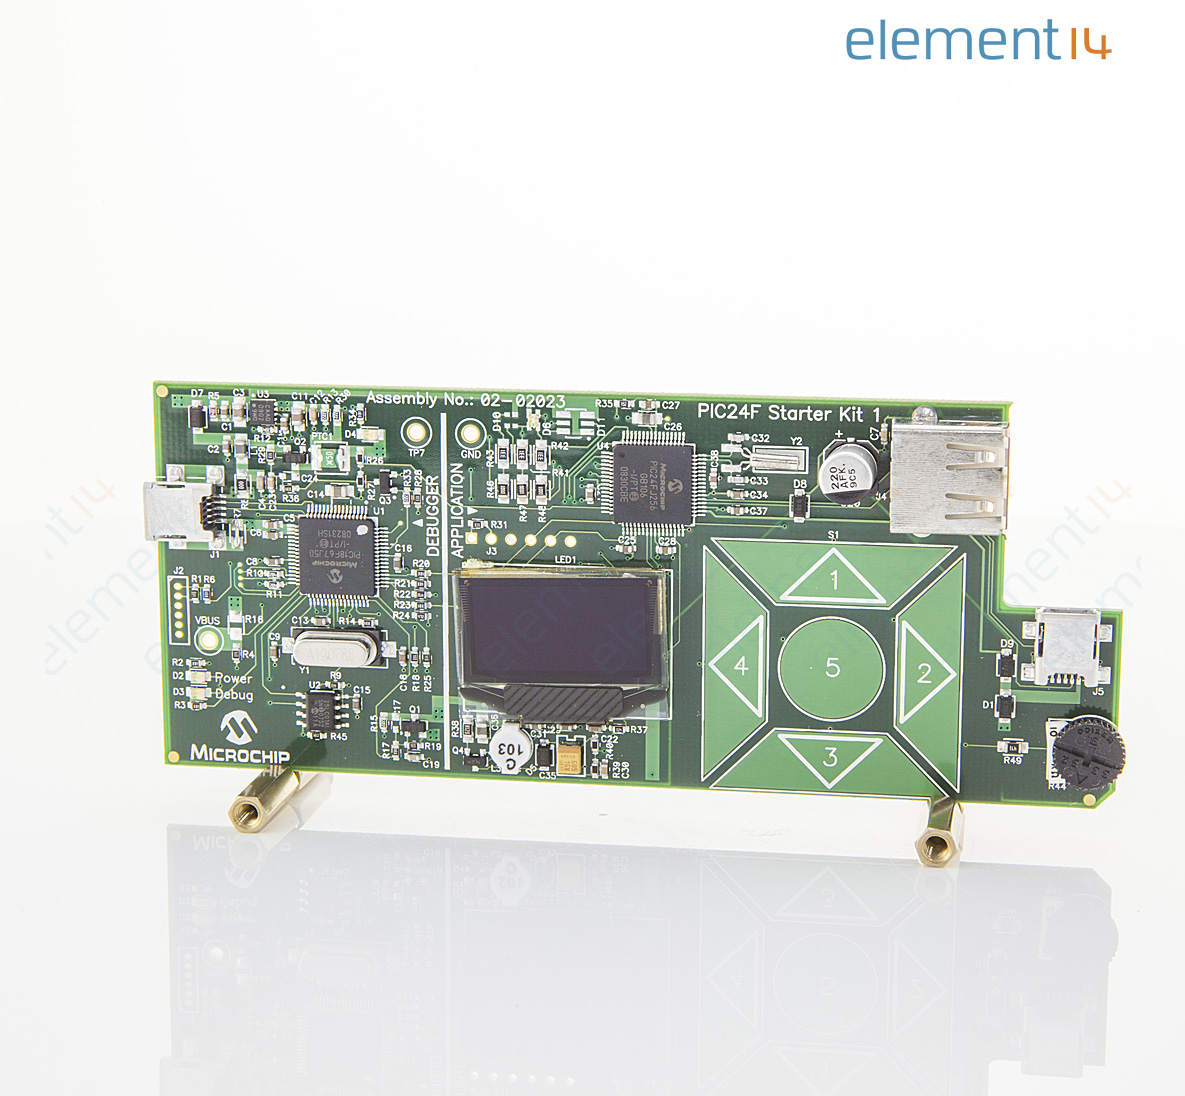 Dm240011 Microchip Evaluation Board Mplab Starter Kit Capacitive Electronics Learning Circuits Webonly Products Technology Richmedia 9400b En